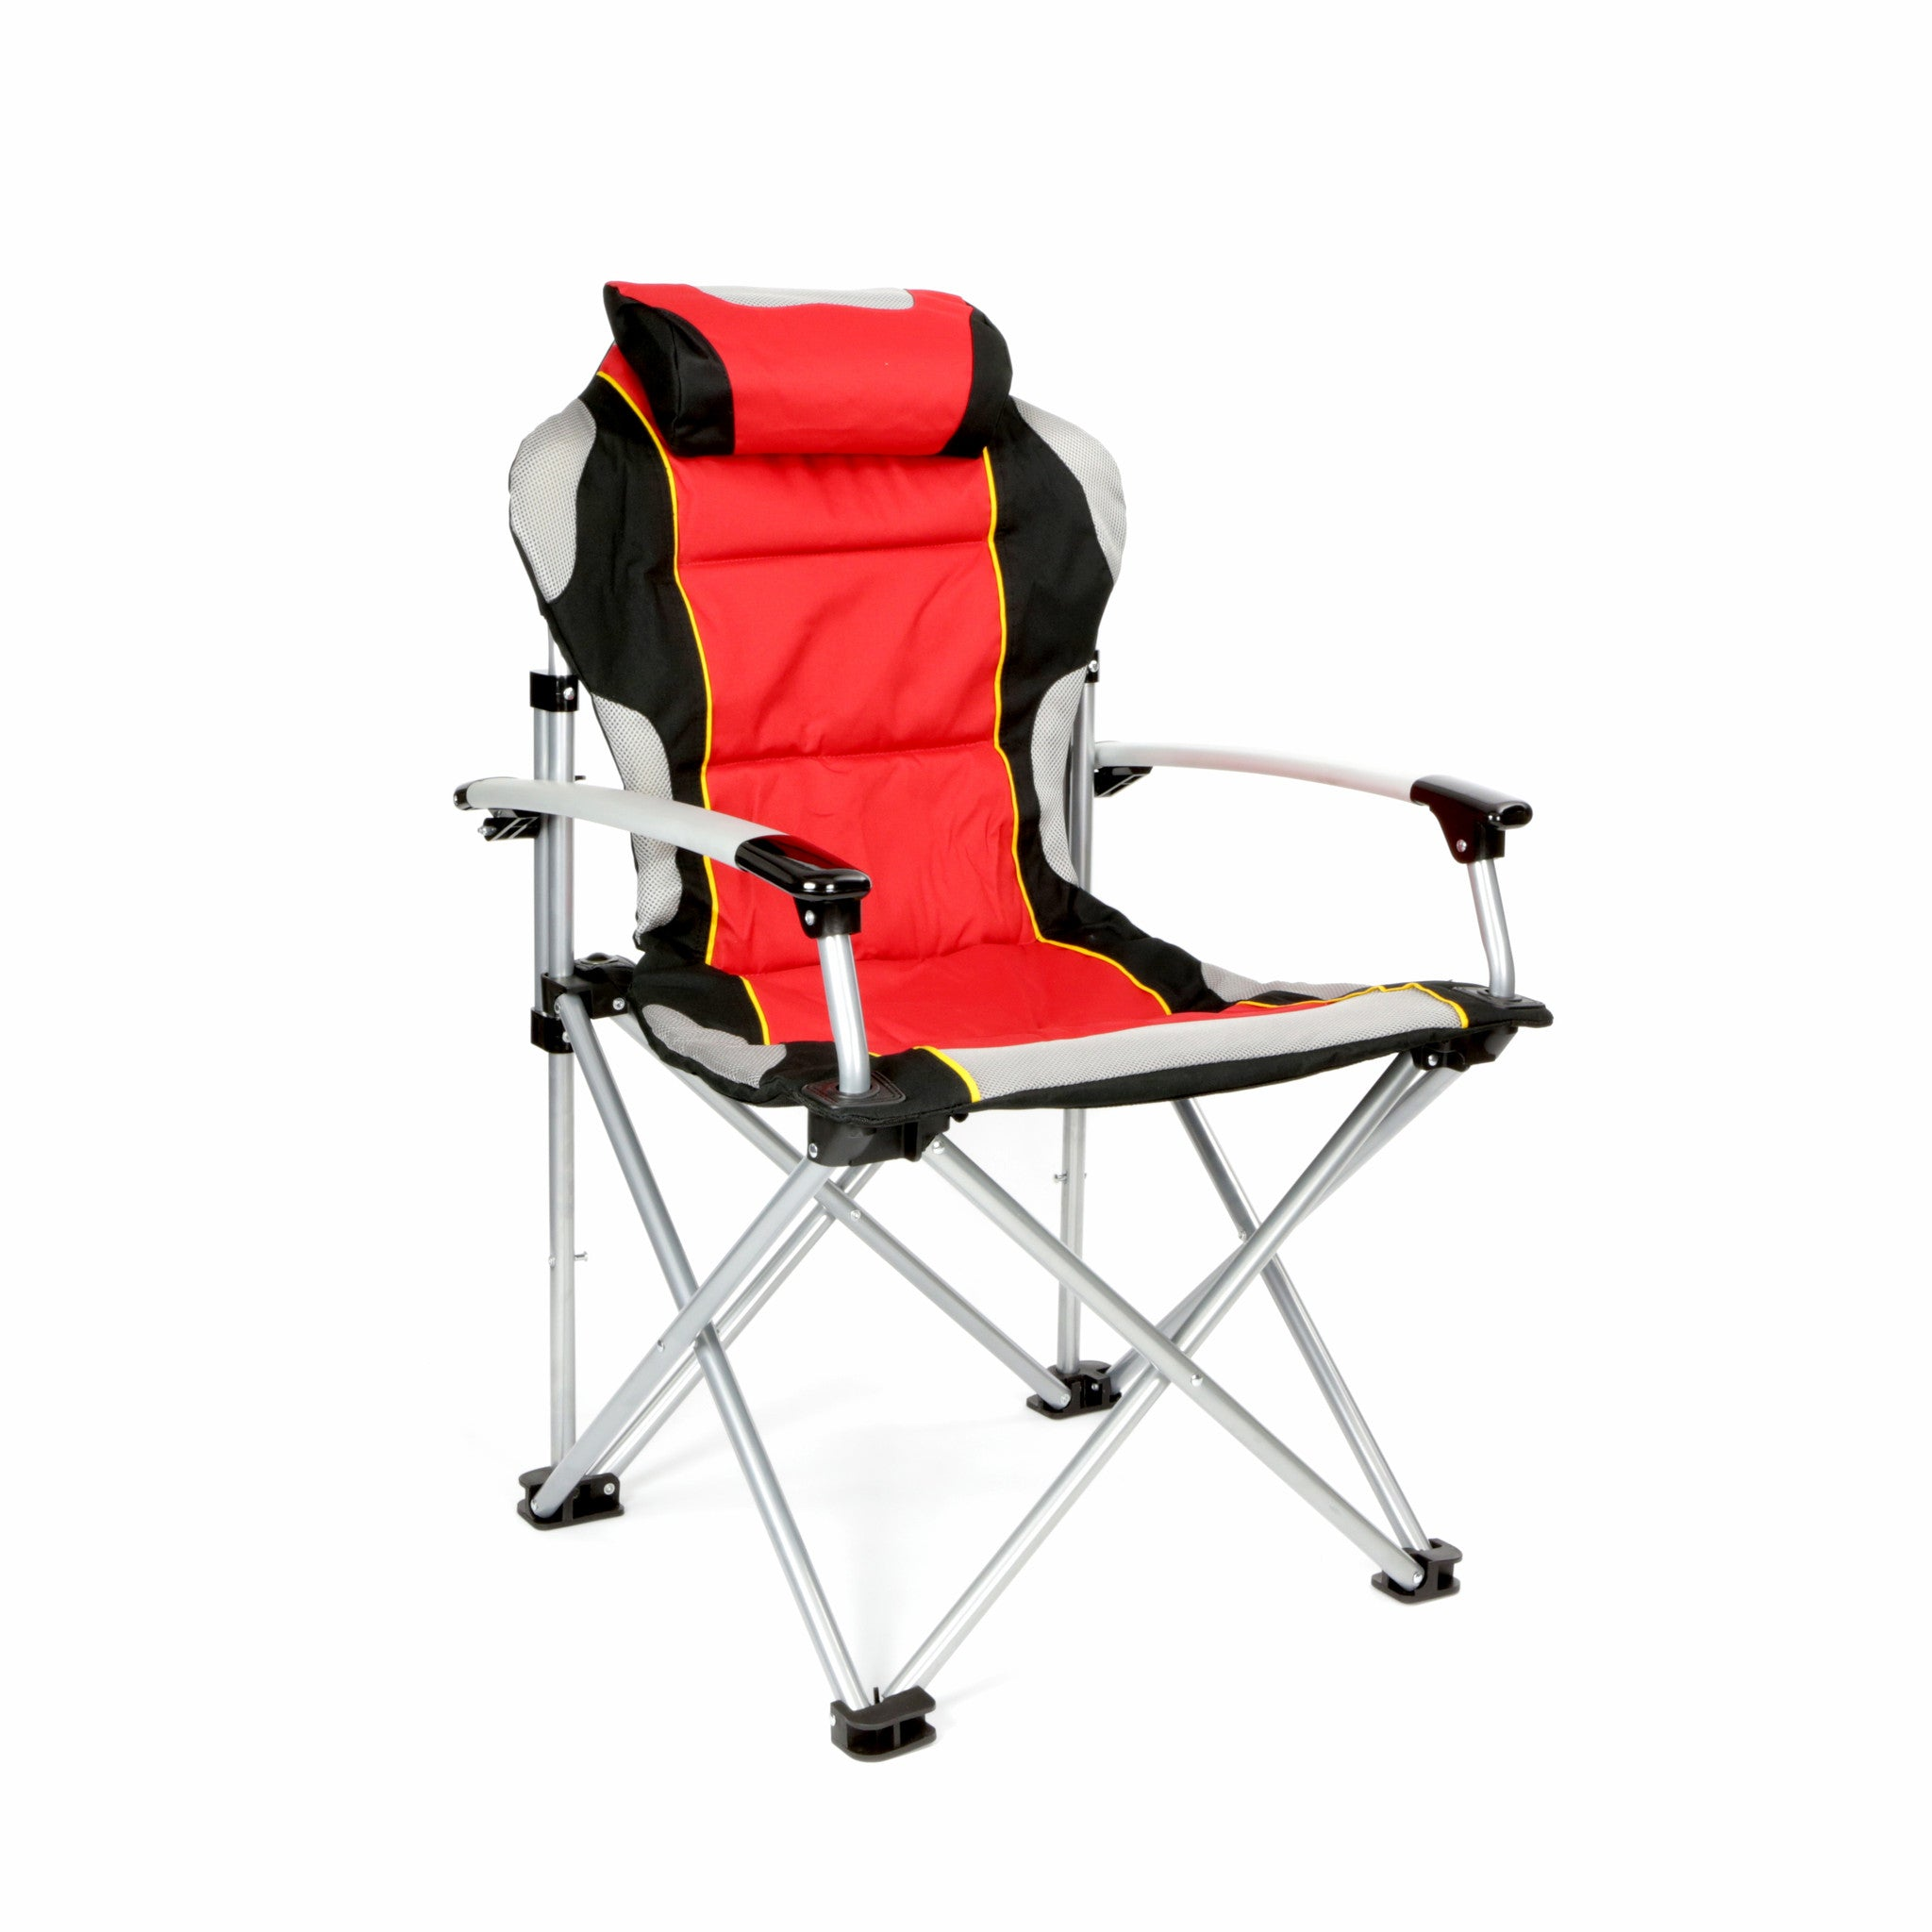 Paddock Chairs Promech Racing